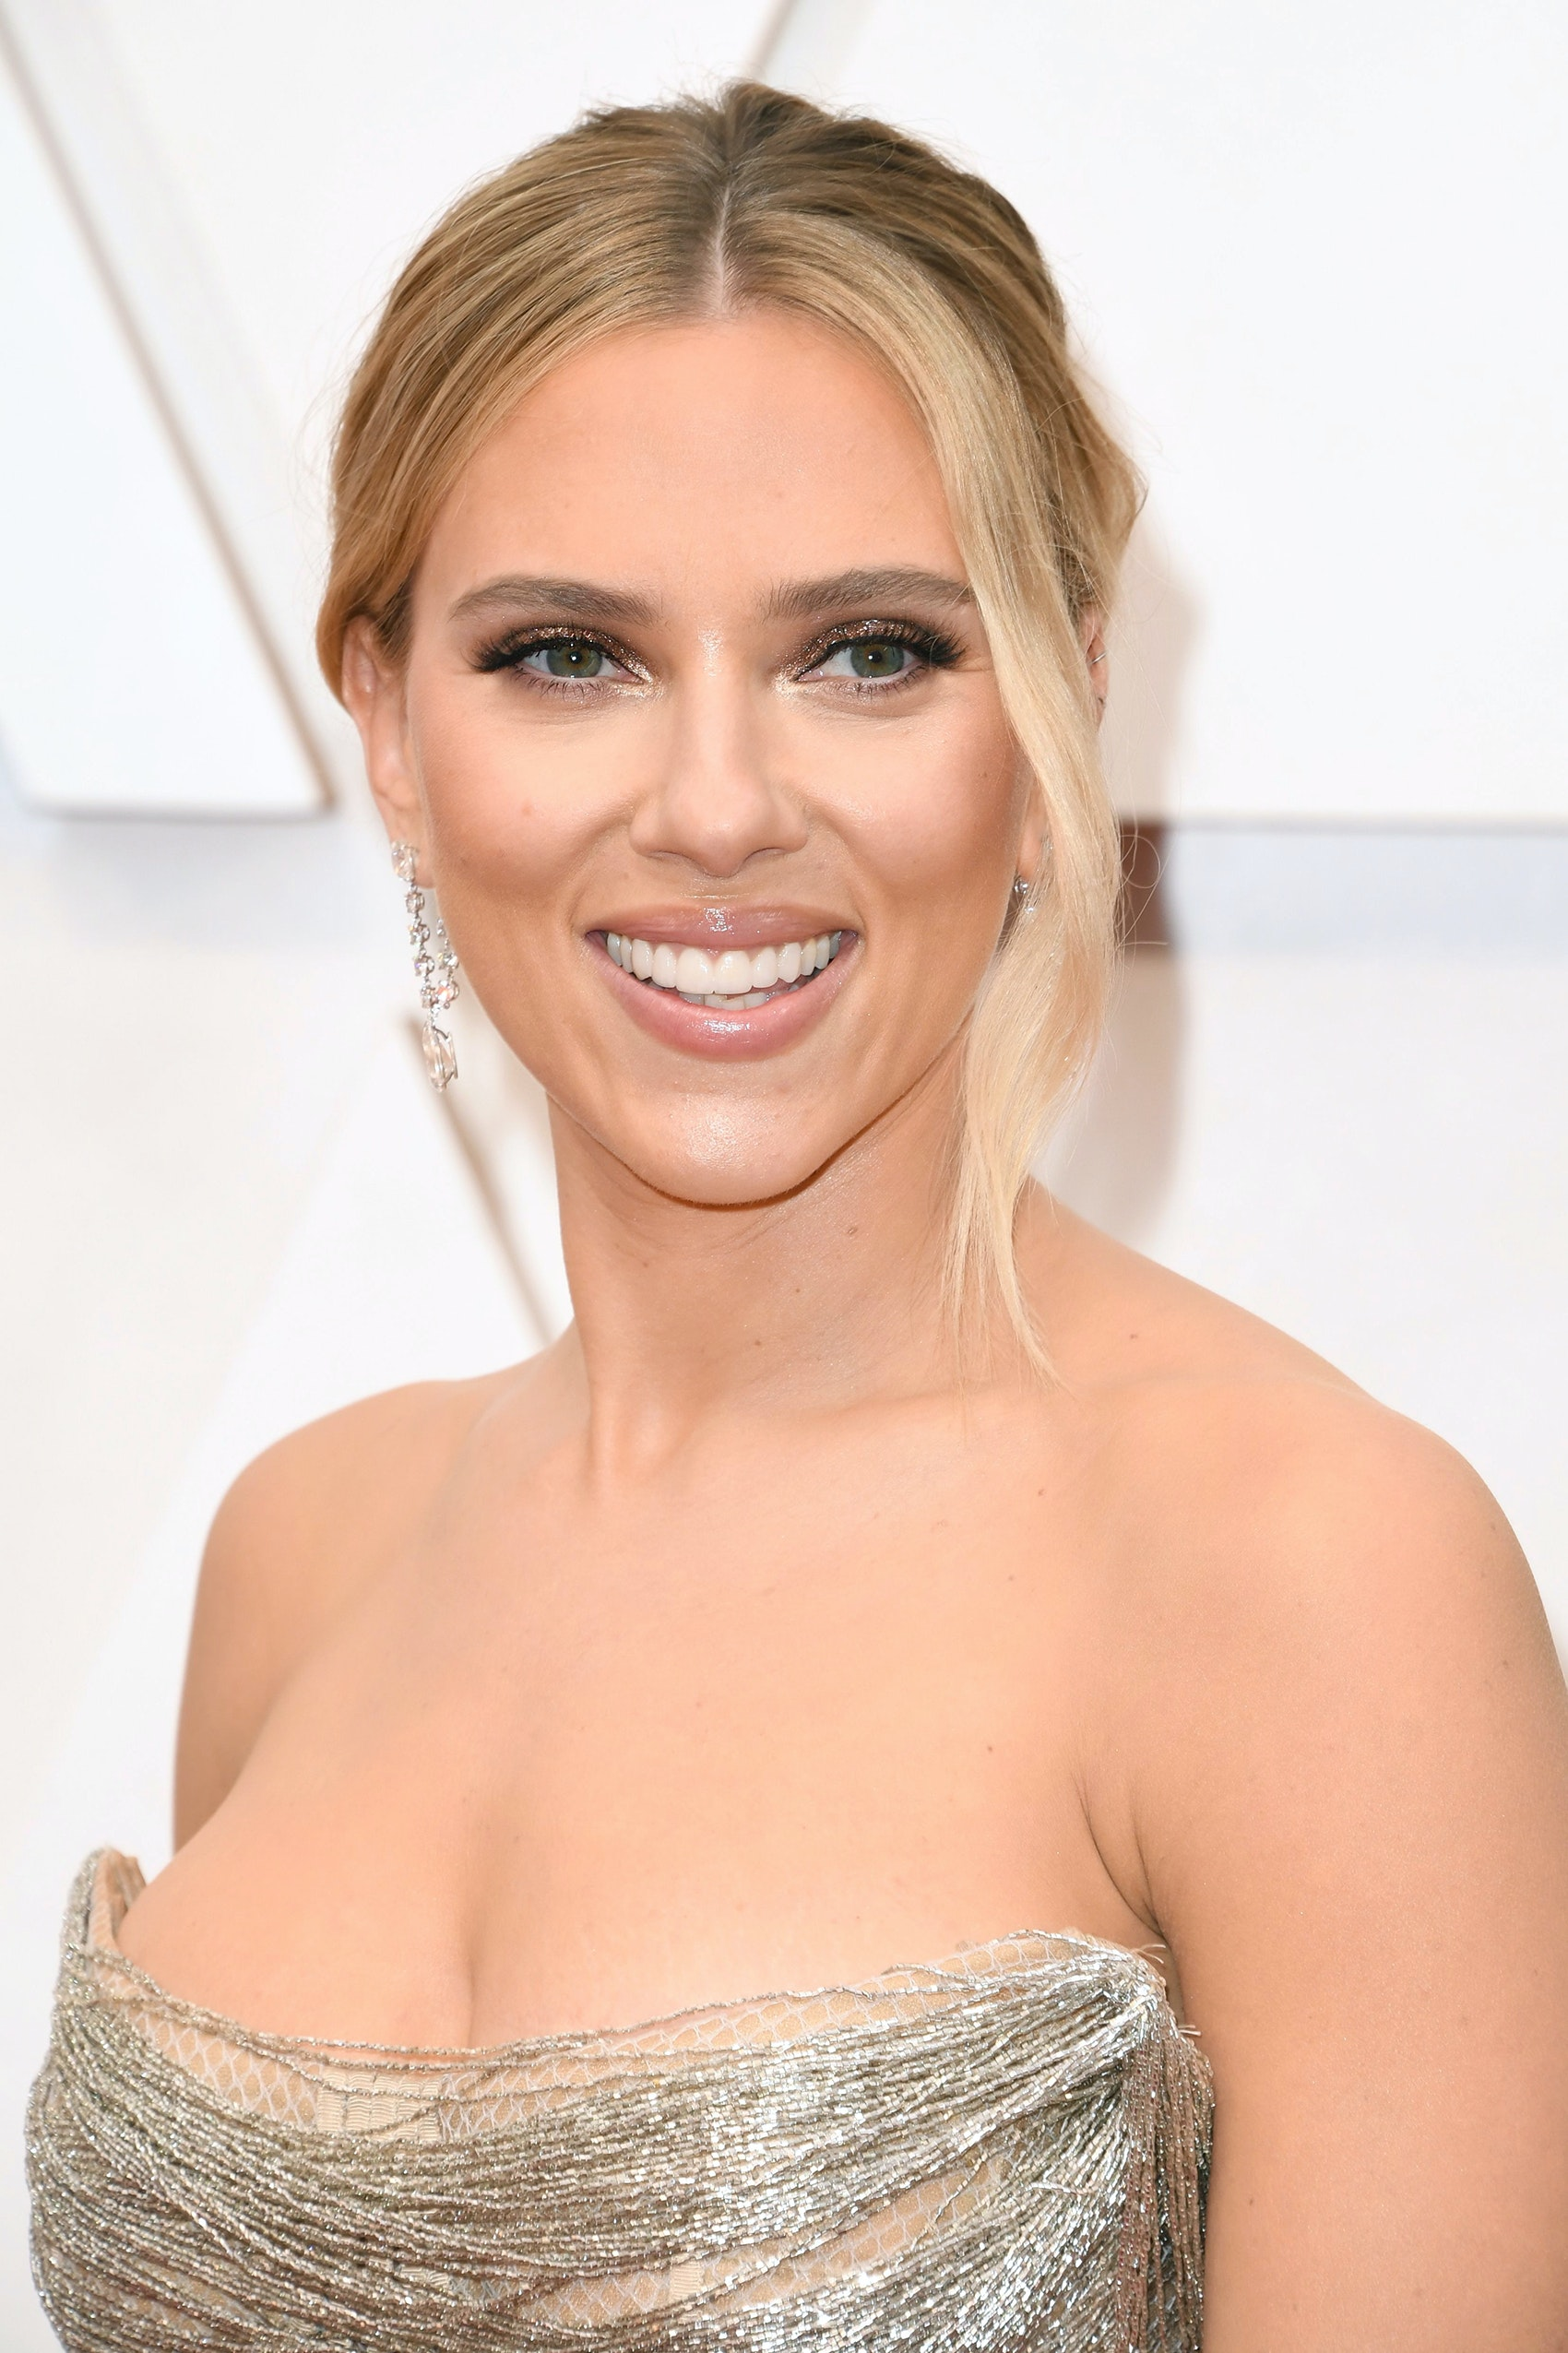 Scarlett Oscars 2020 beauty looks